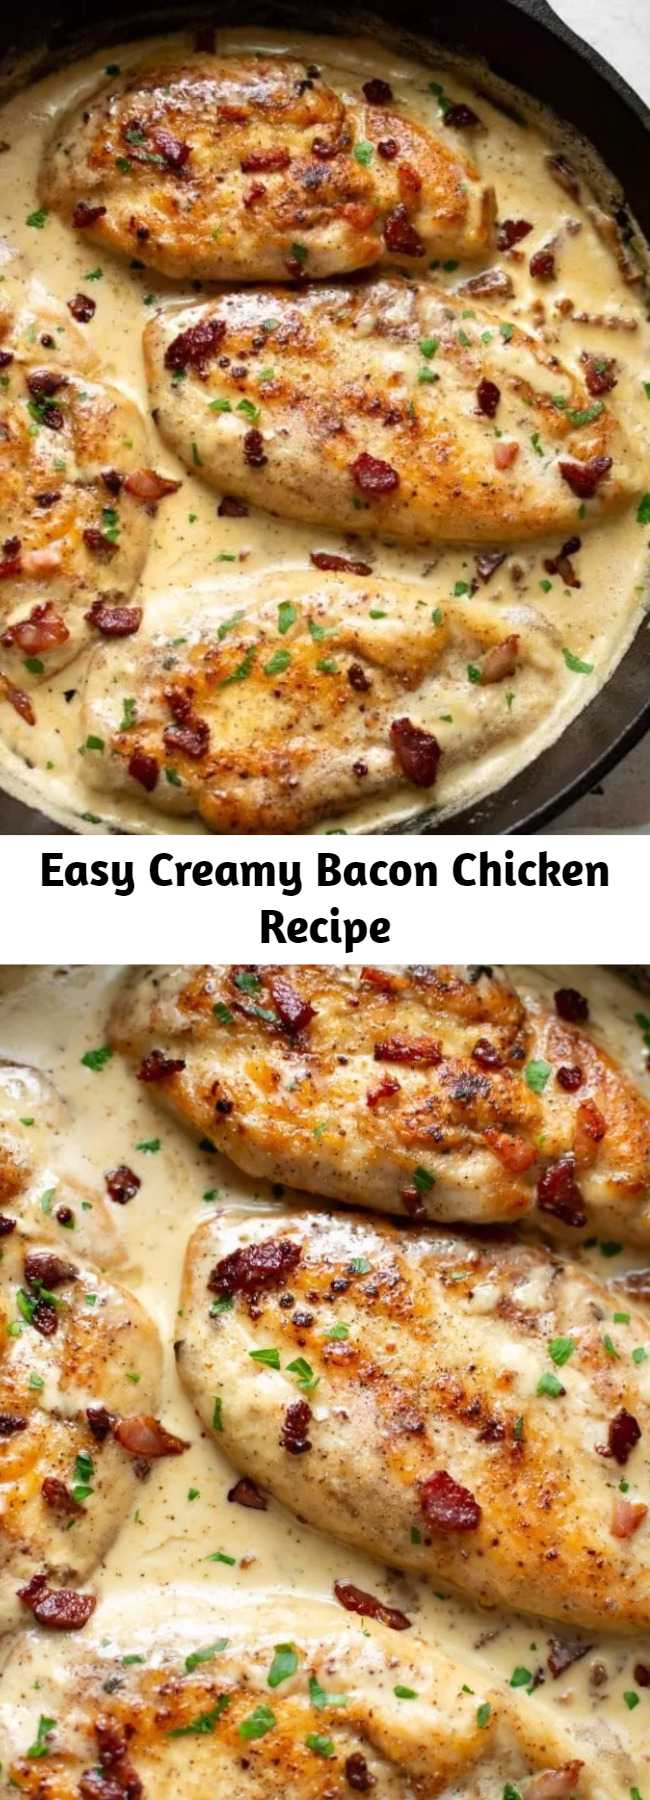 Easy Creamy Bacon Chicken Recipe - This creamy bacon chicken recipe is a decadent and delicious dinner that's easy enough for a weeknight and tasty enough for company. It's ready in about 30 minutes!